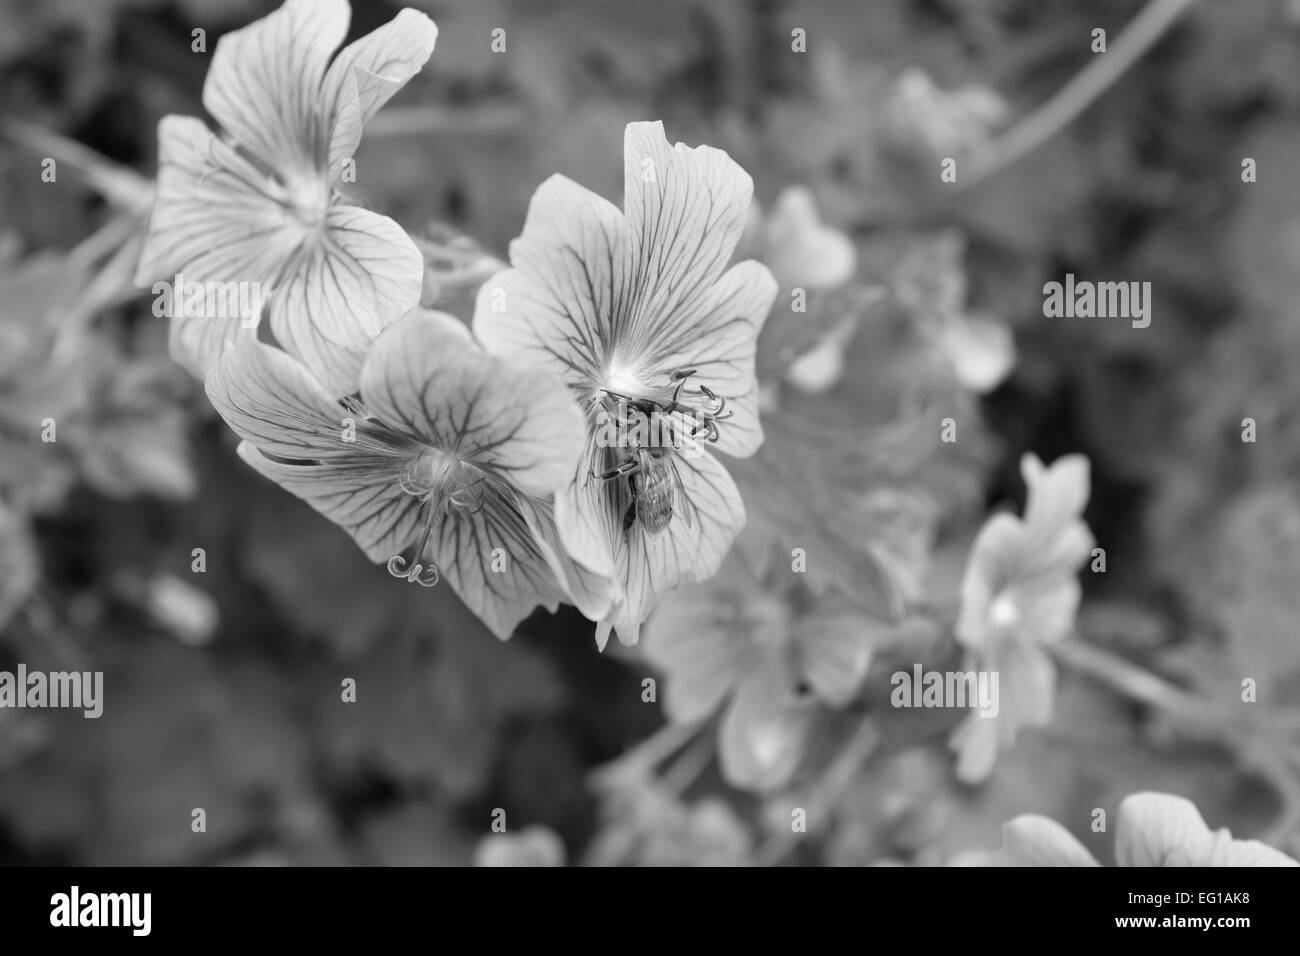 A honey bee uses its proboscis to take nectar from a geranium flower - monochrome processing - Stock Image